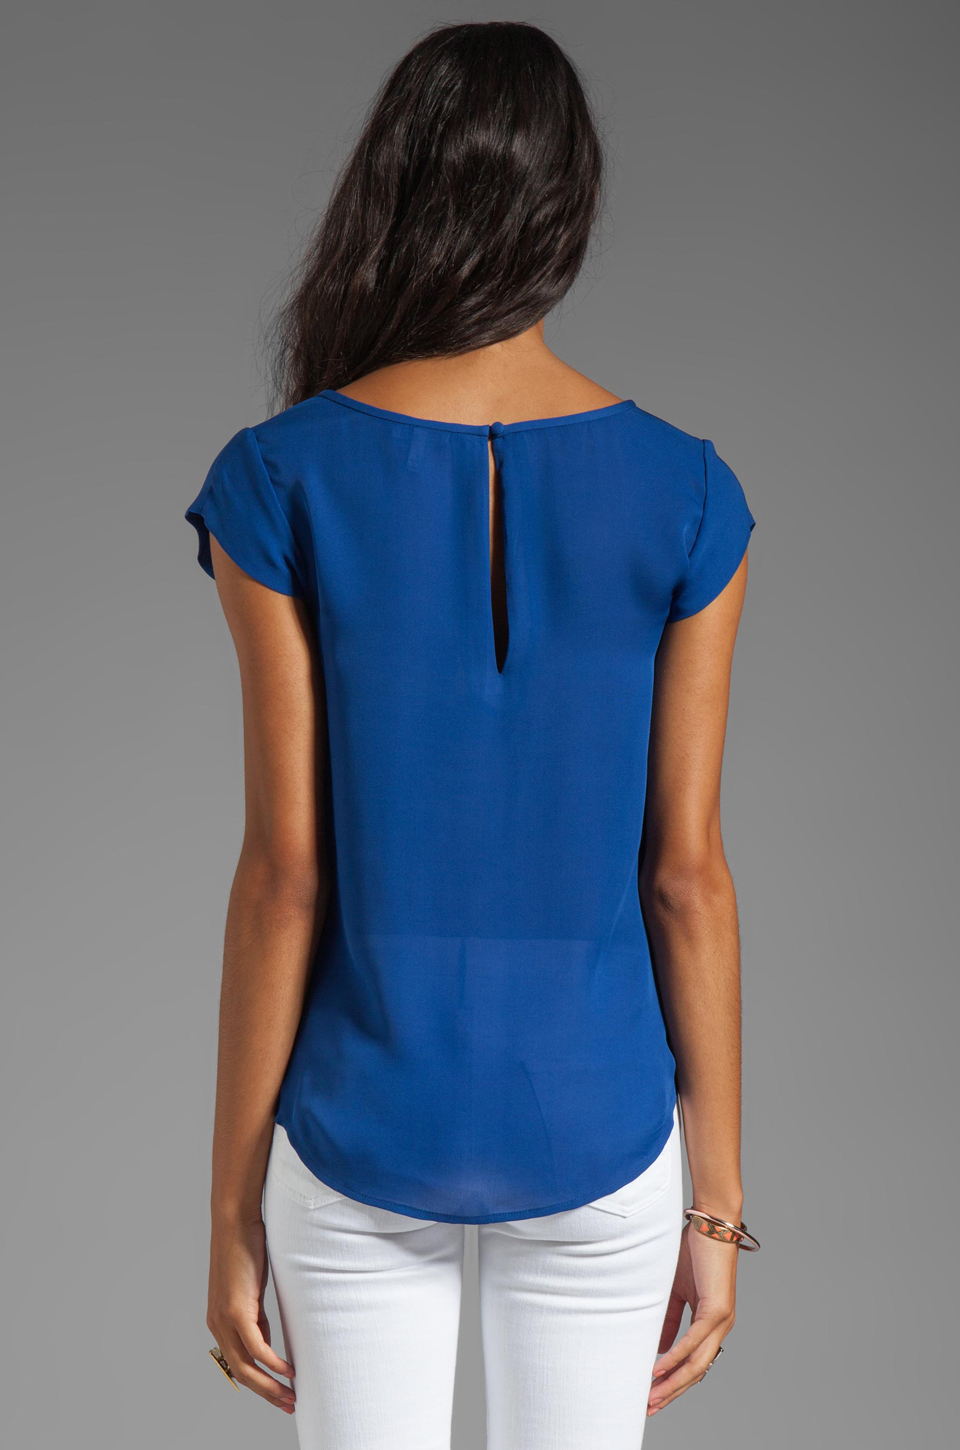 Joie Matte Silk Rancher Top in Peruvian Blue